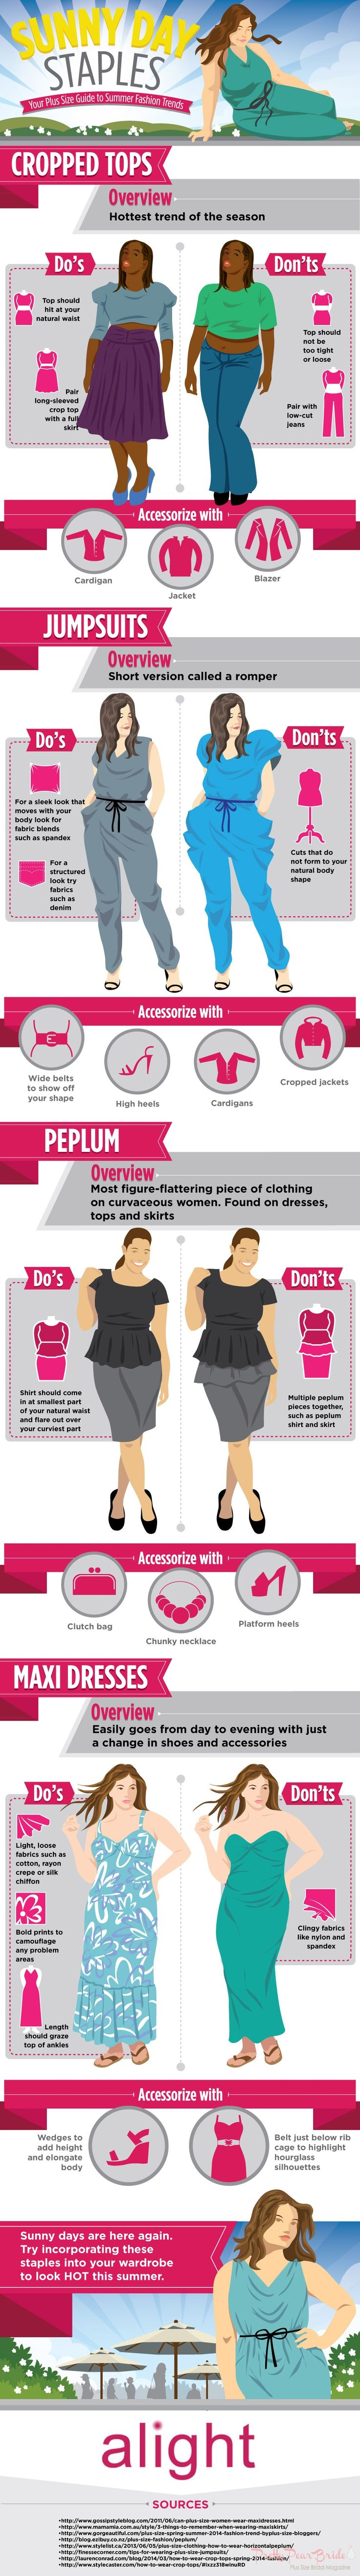 #plussize #fashions {Fashion Friday} Do's and Don'ts of Plus Size Summer Trends | Pretty Pear Bride | http://prettypearbride.com/fashion-friday-dos-and-donts-of-plus-size-summer-trends/